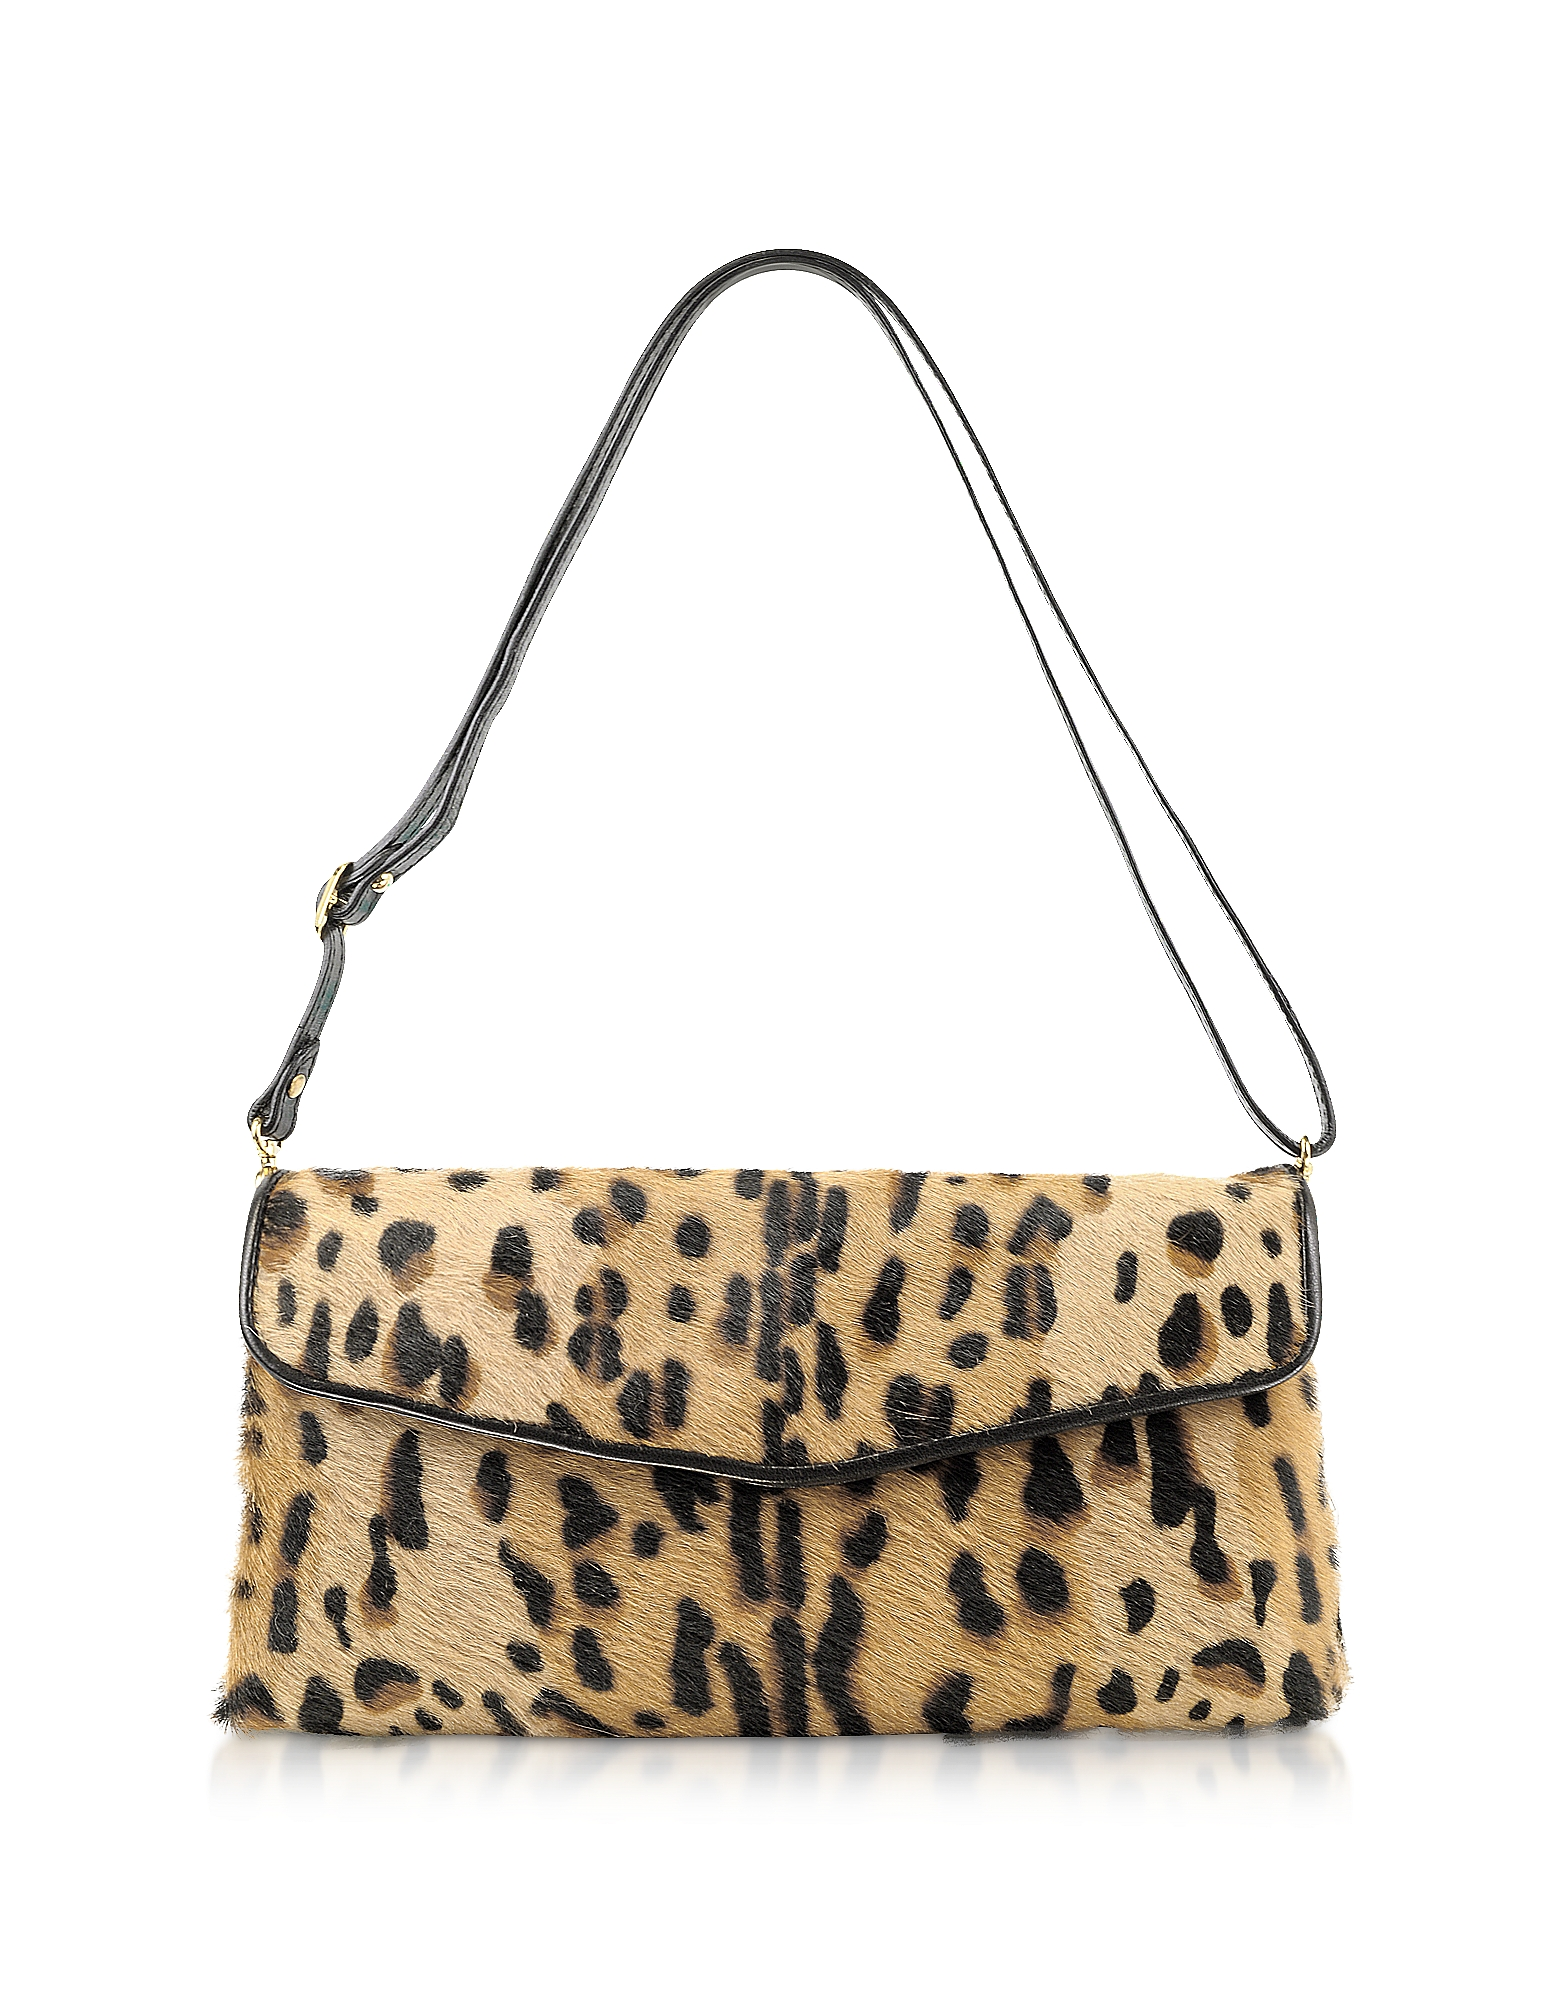 Fontanelli Handbags, Calfhair Leopard Print Shoulder Bag